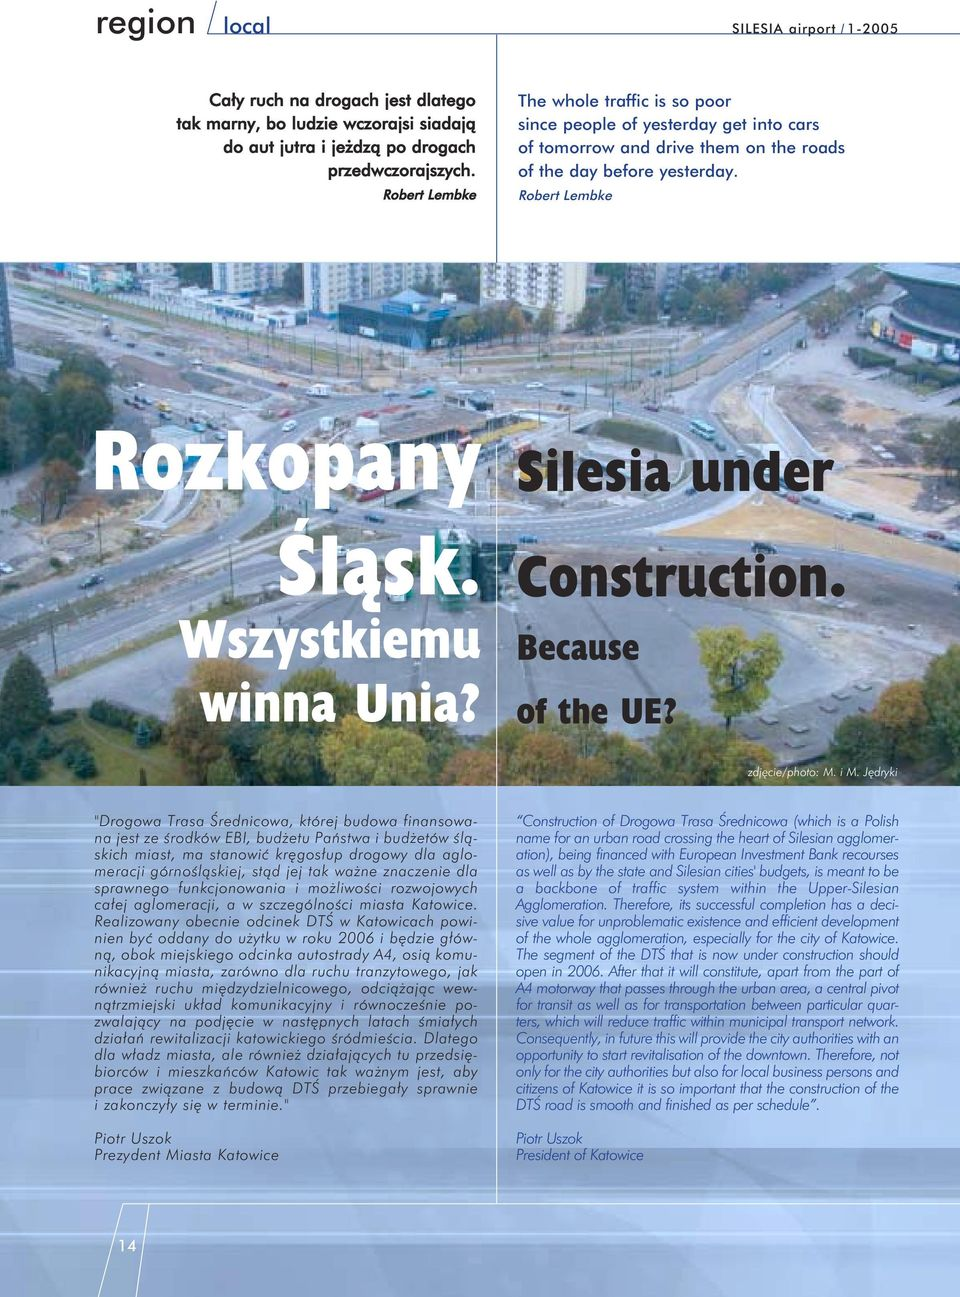 Wszystkiemu winna Unia? Silesia under Construction. Because of the UE? zdjęcie/photo: M. i M.